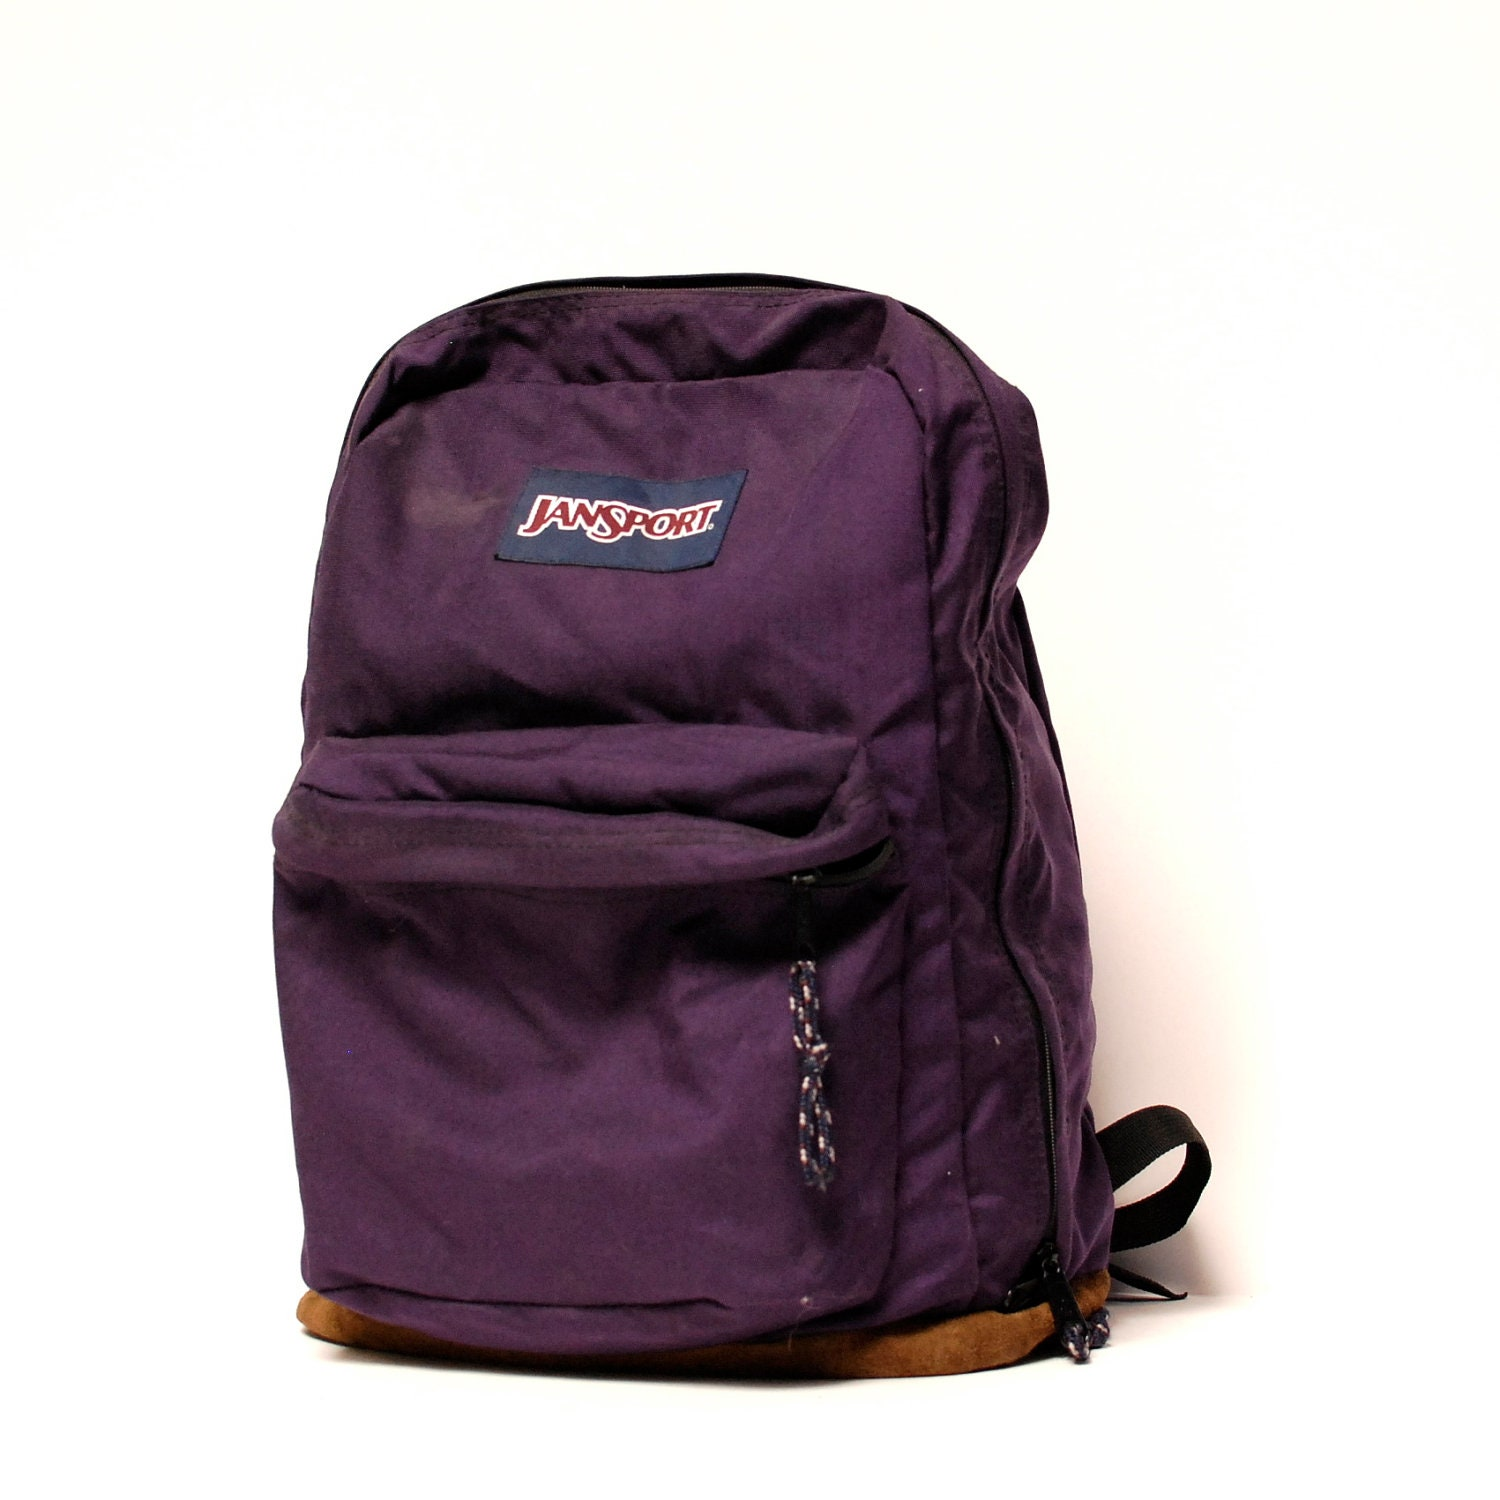 LEATHER JANSPORT purple canvas BACKPACK